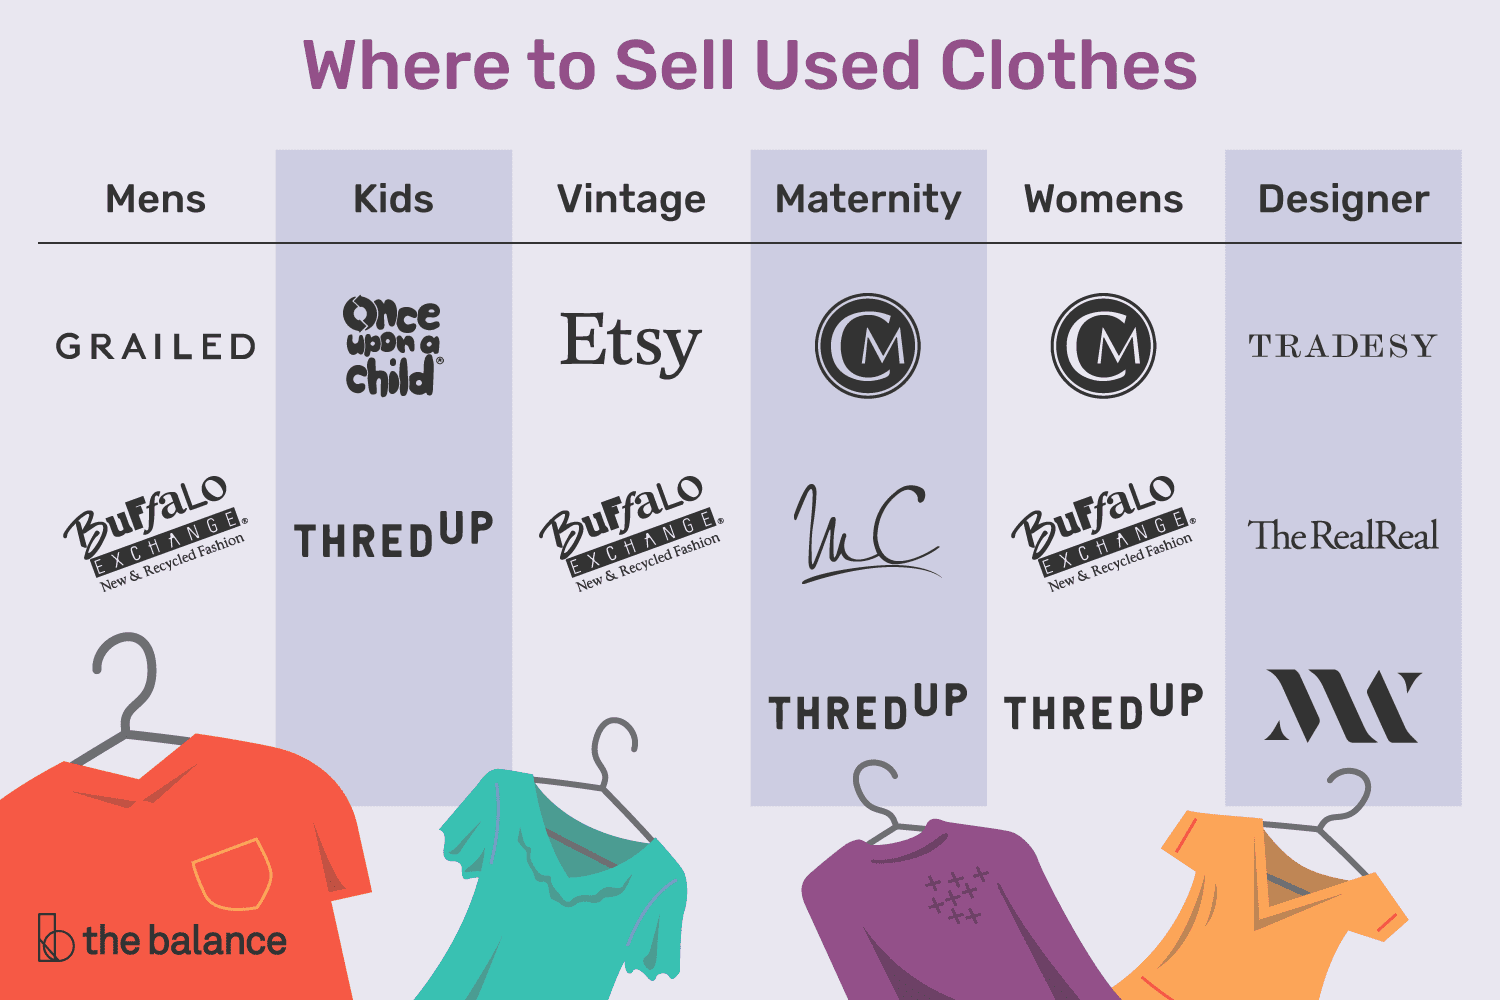 Where to Sell Used Clothes for Men, Women and Kids